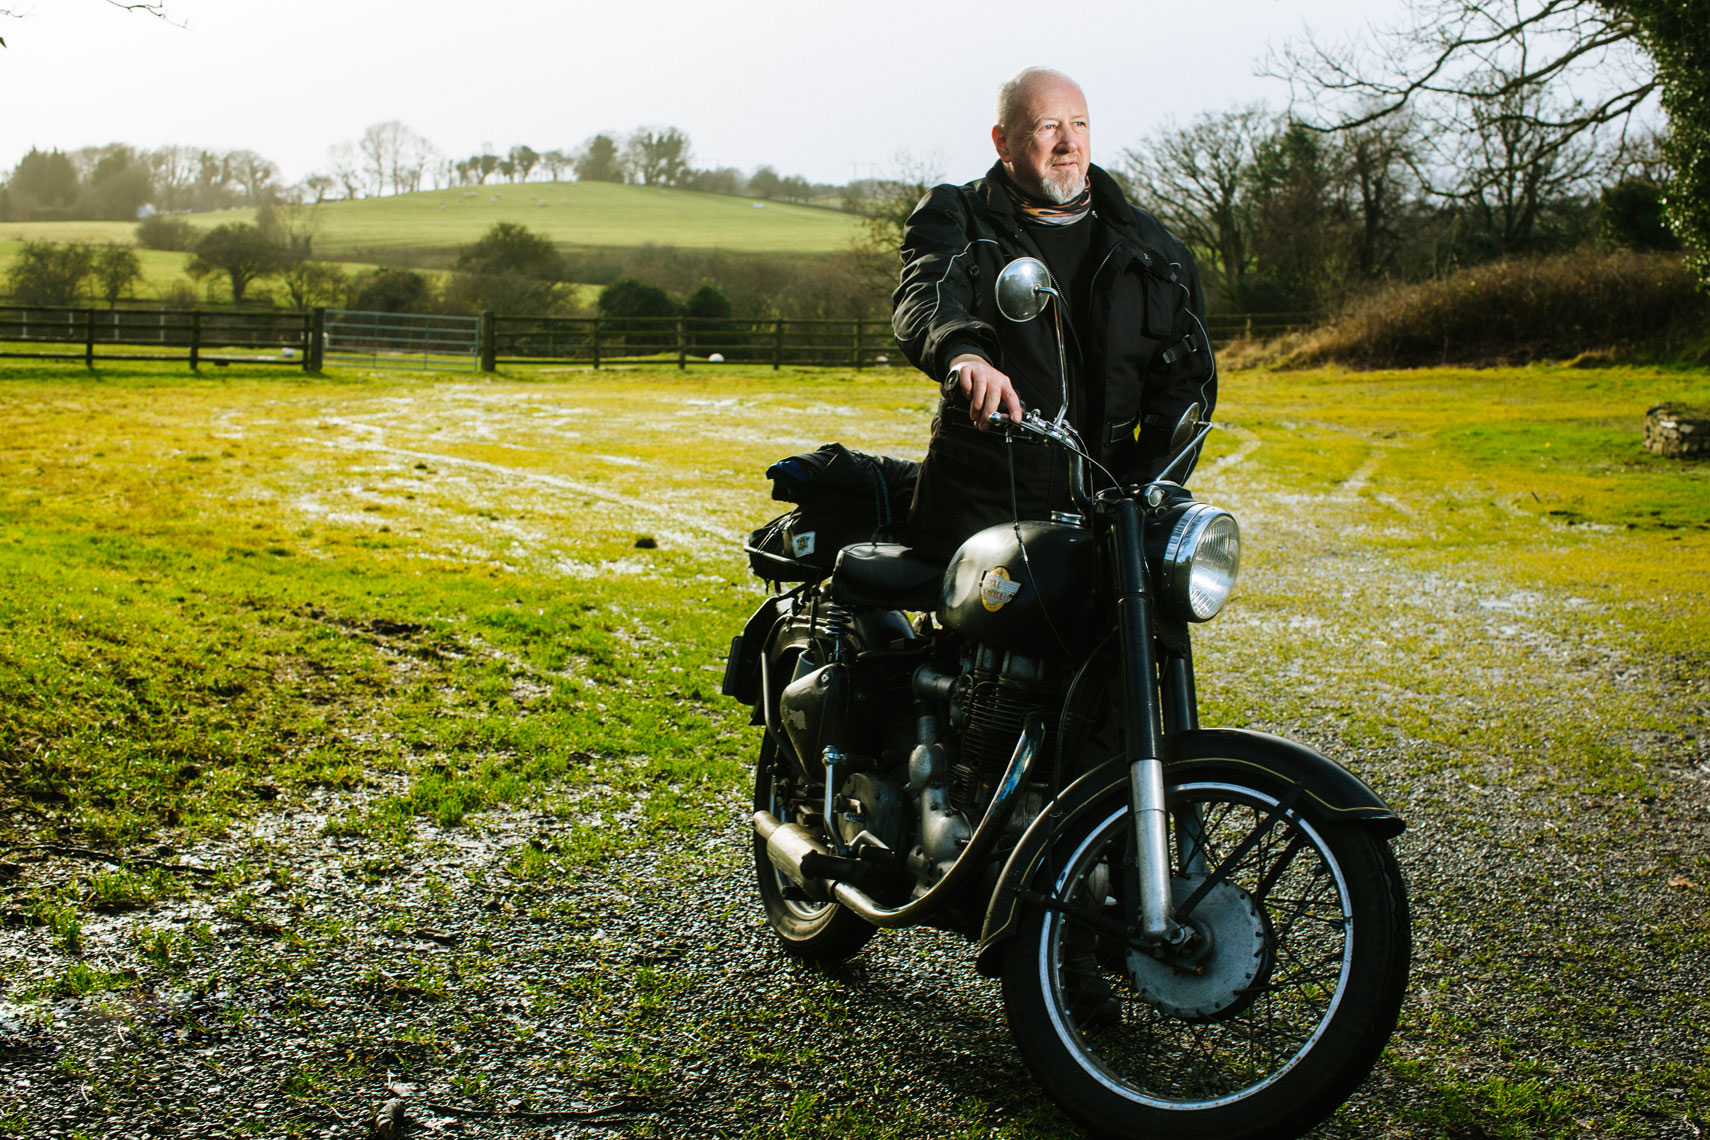 environmental photography: a vintage enfield motorcycle